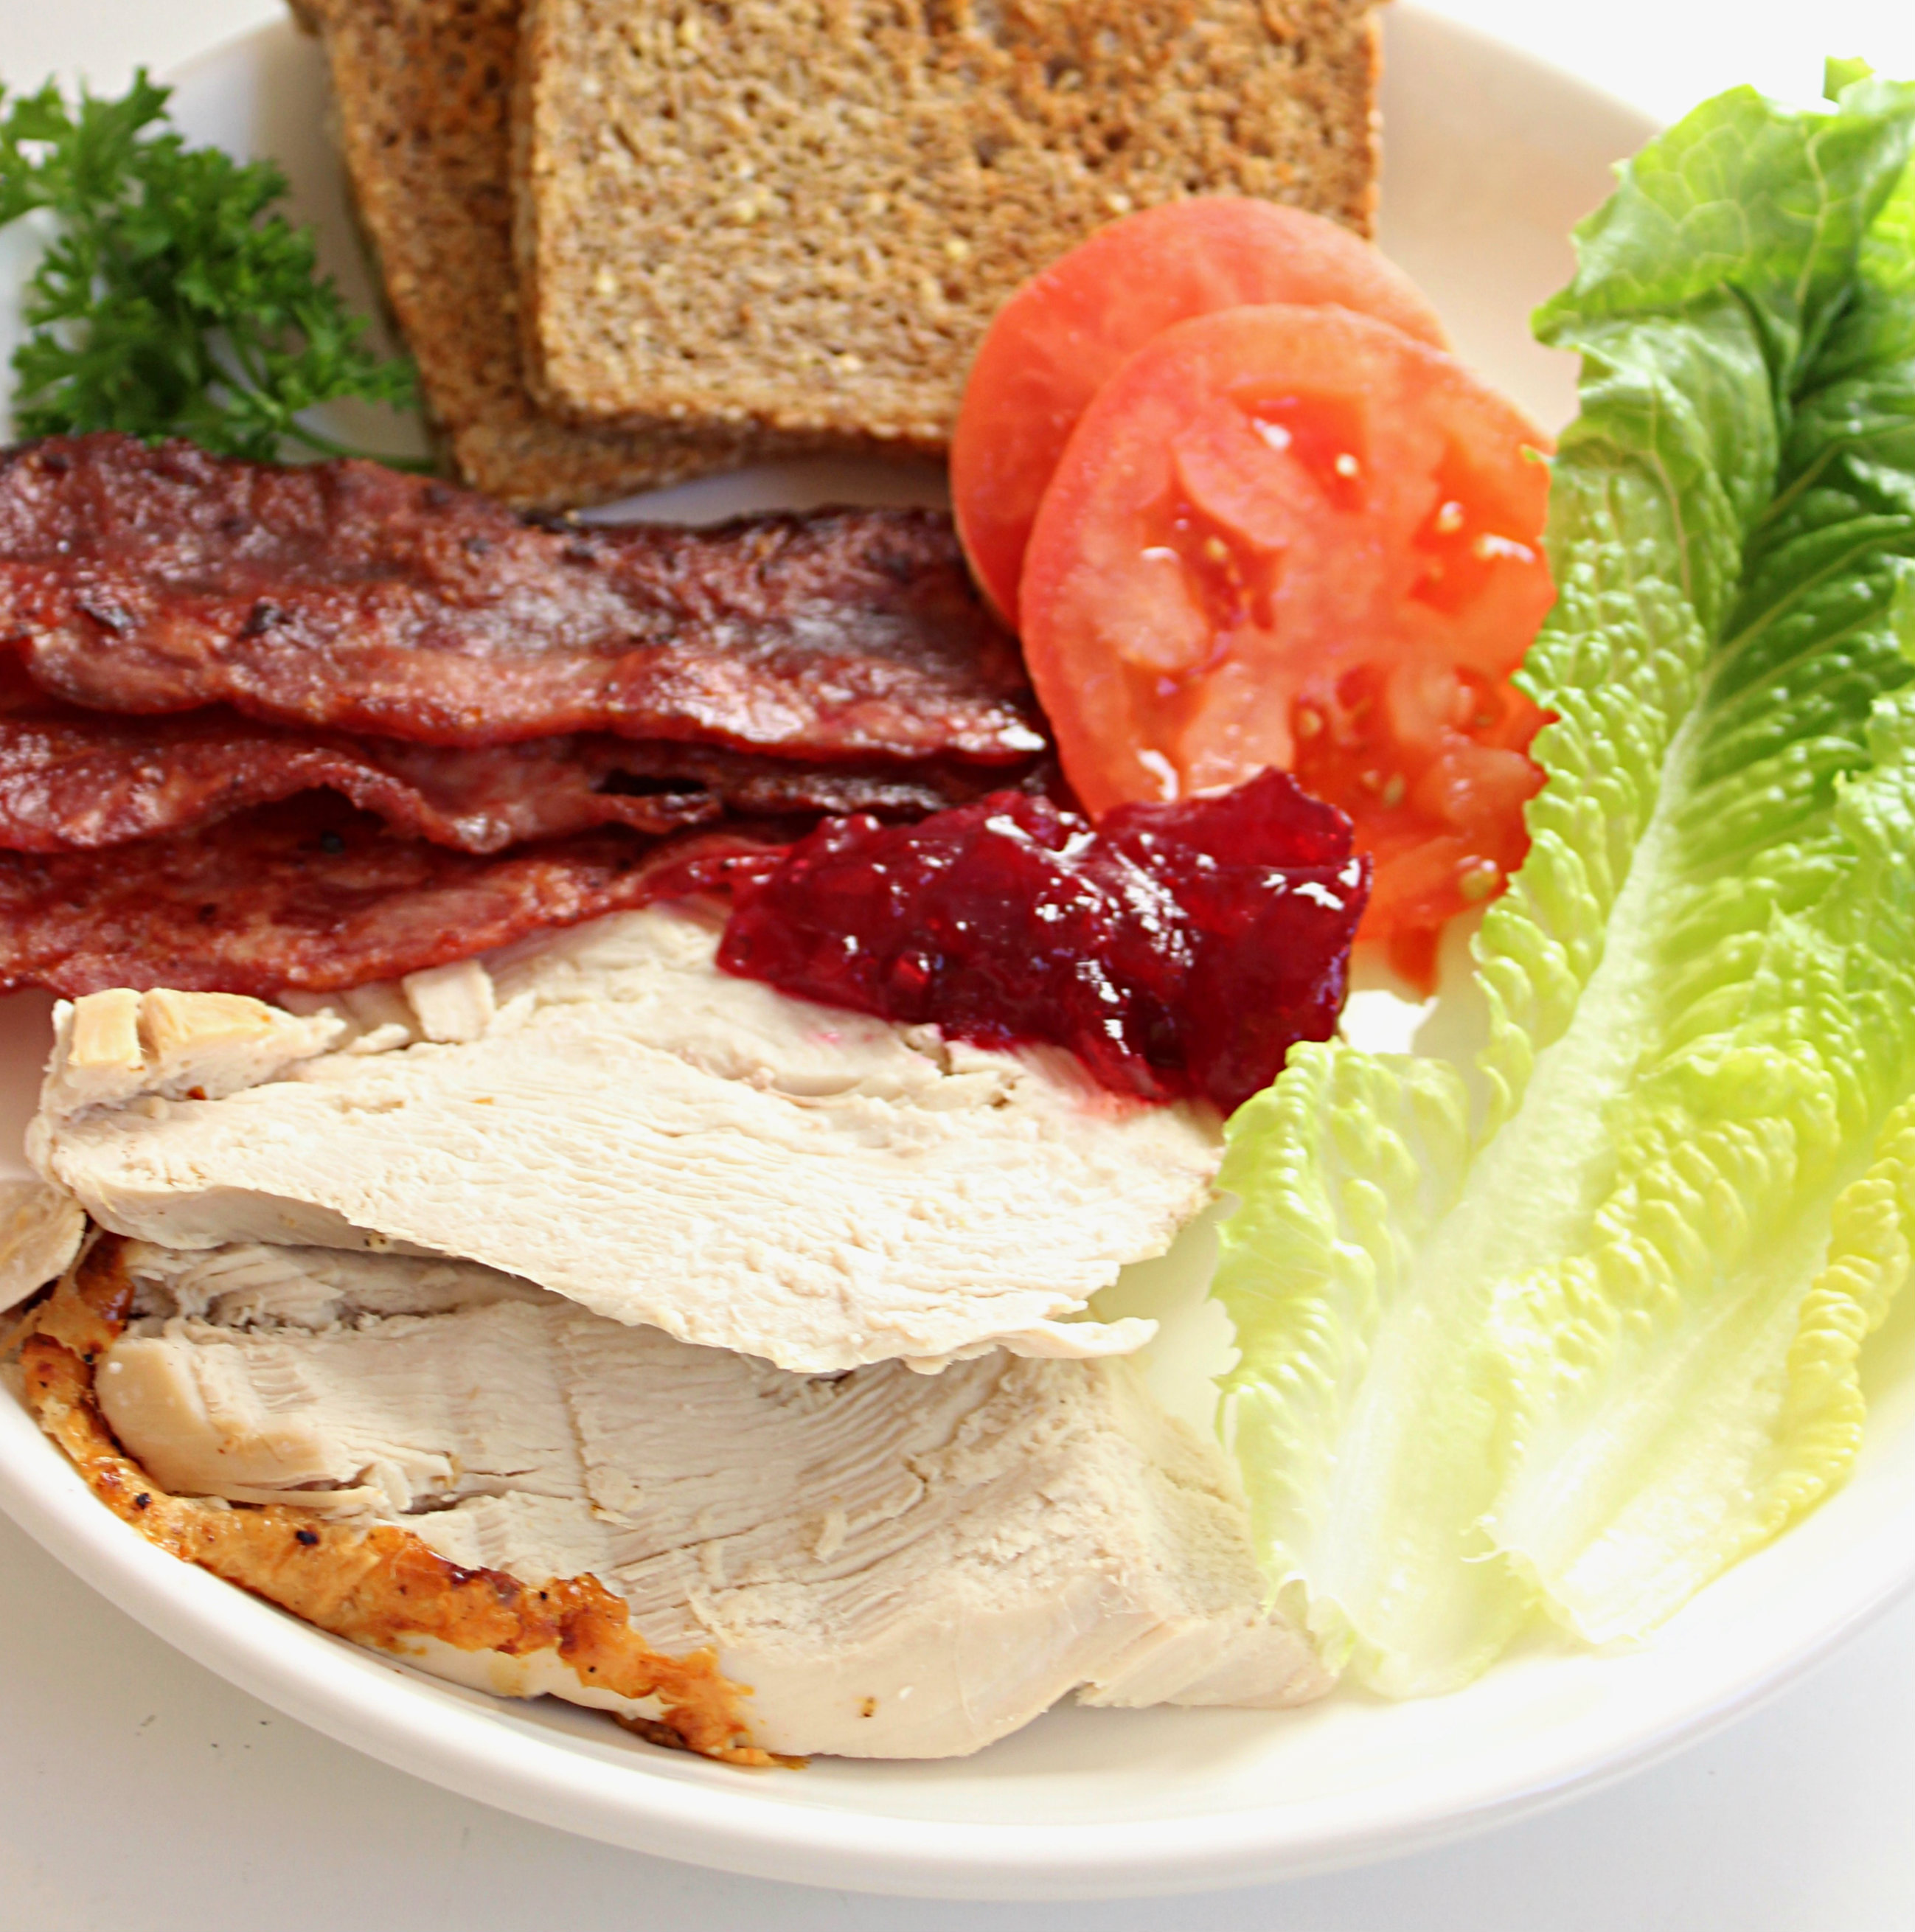 Leftover Turkey: Club Sandwich with veganaise, sprouted spread, turkey bacon and cranberry sauce.